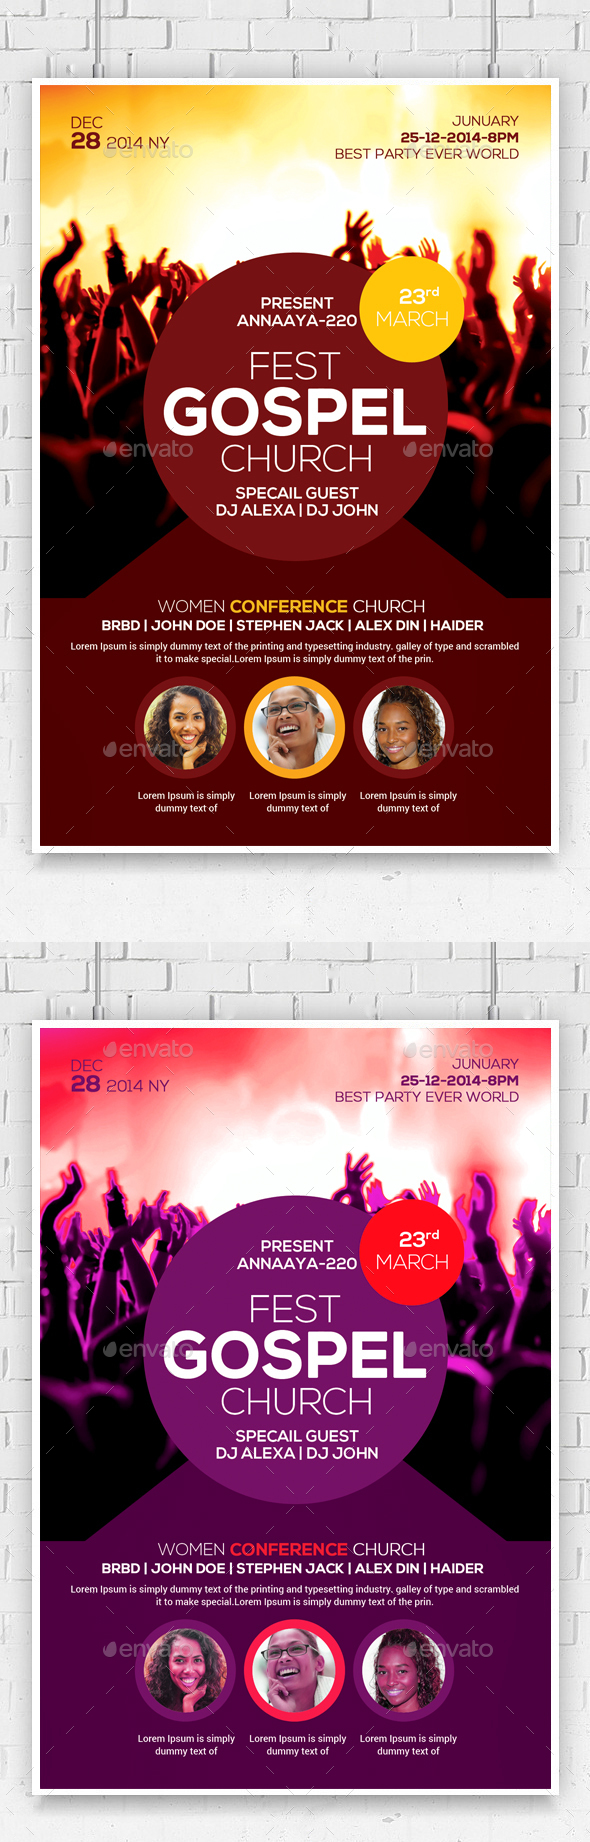 gospel fest church flyer template church flyers